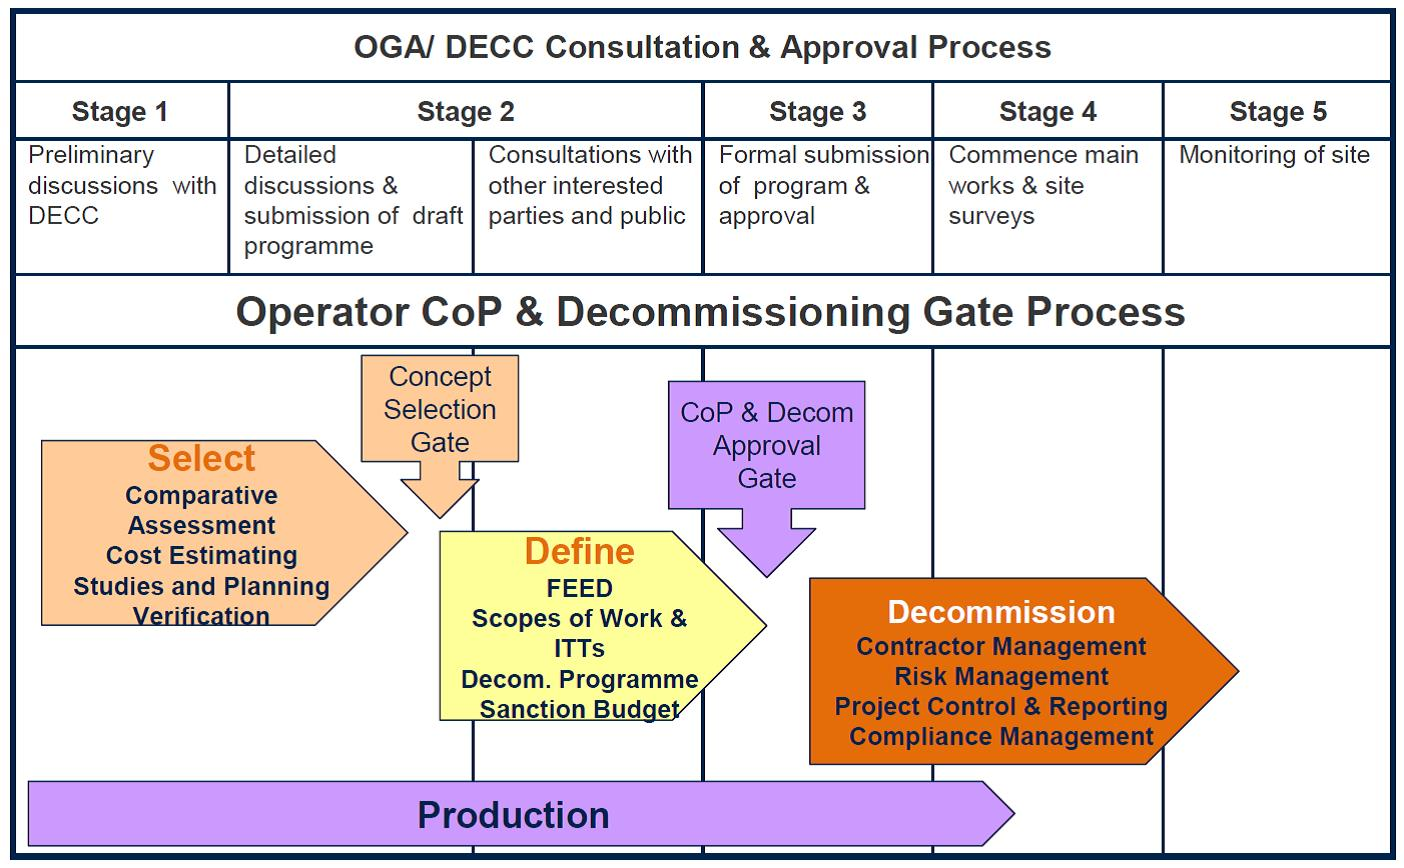 Decommissioning Costain Process Flow Diagram Oil And Gas Production Capability Throughout The